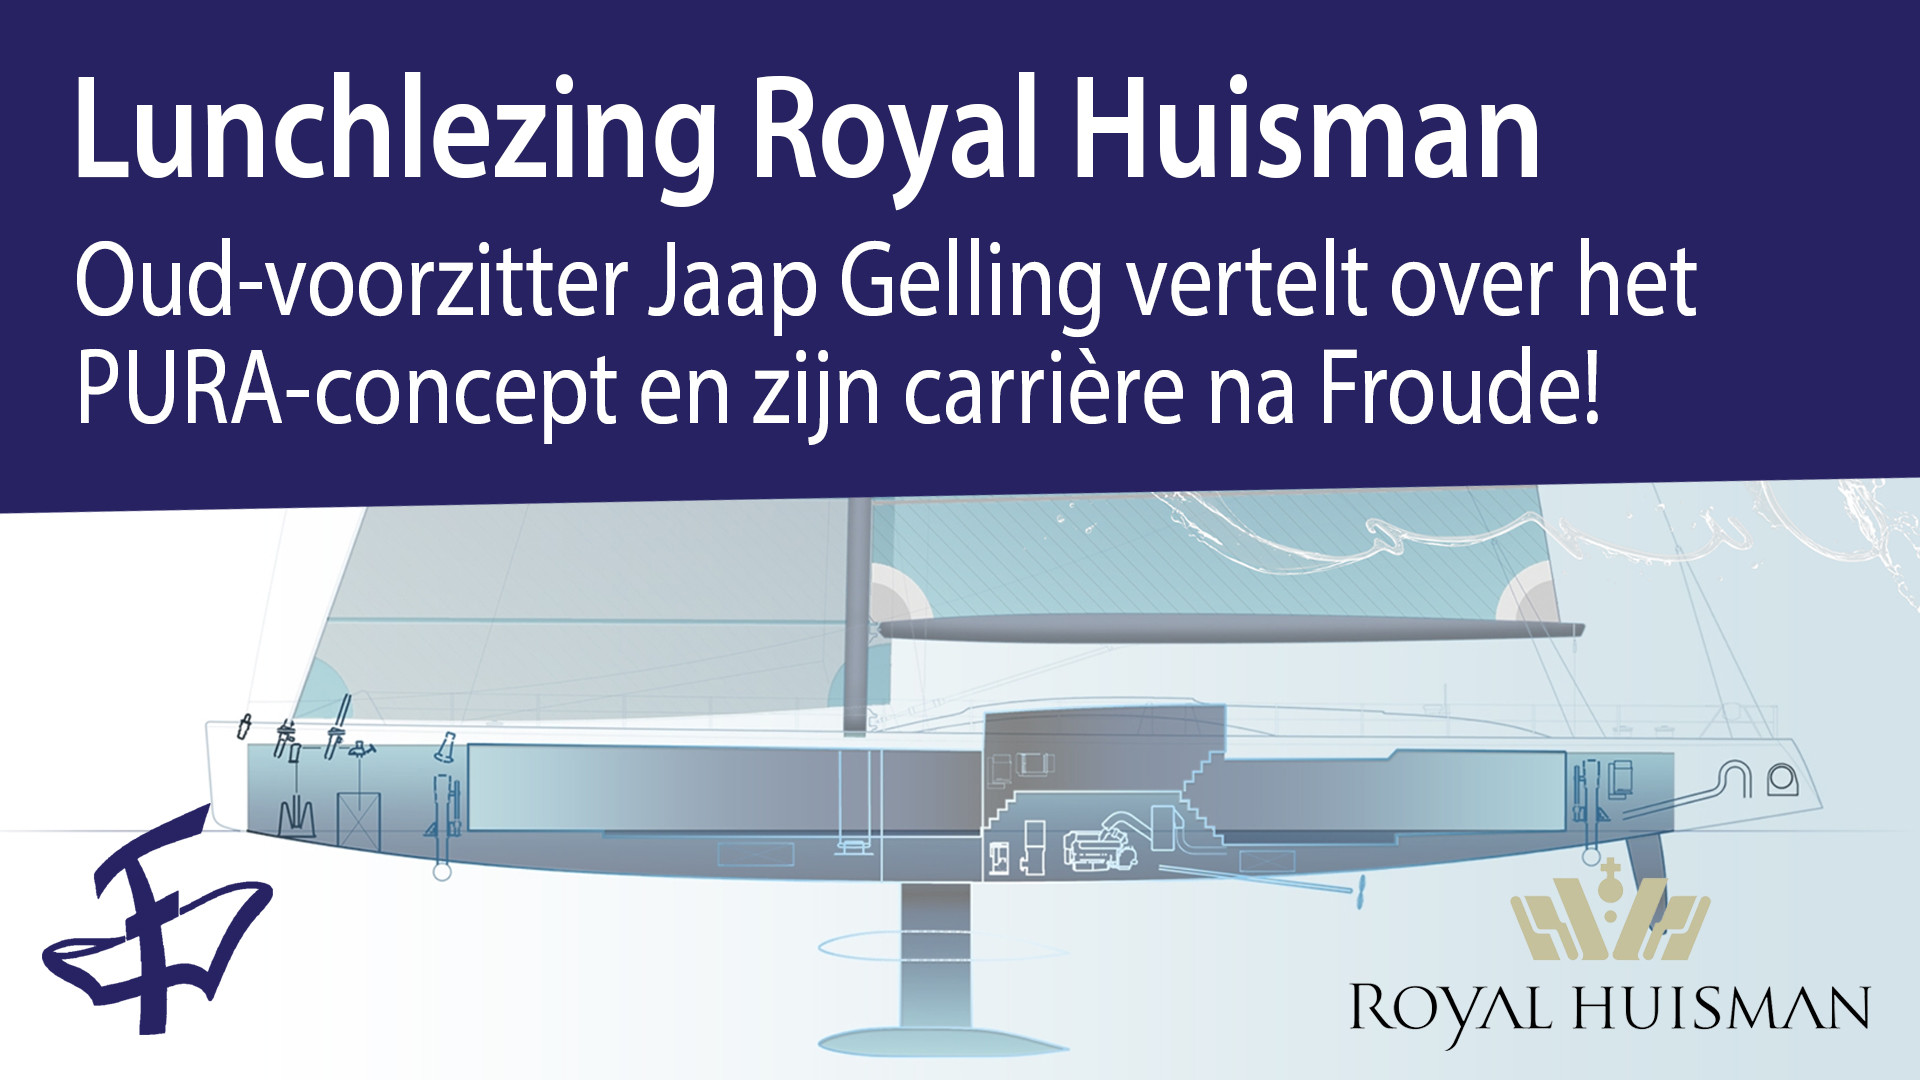 Lunchlezing Royal Huisman